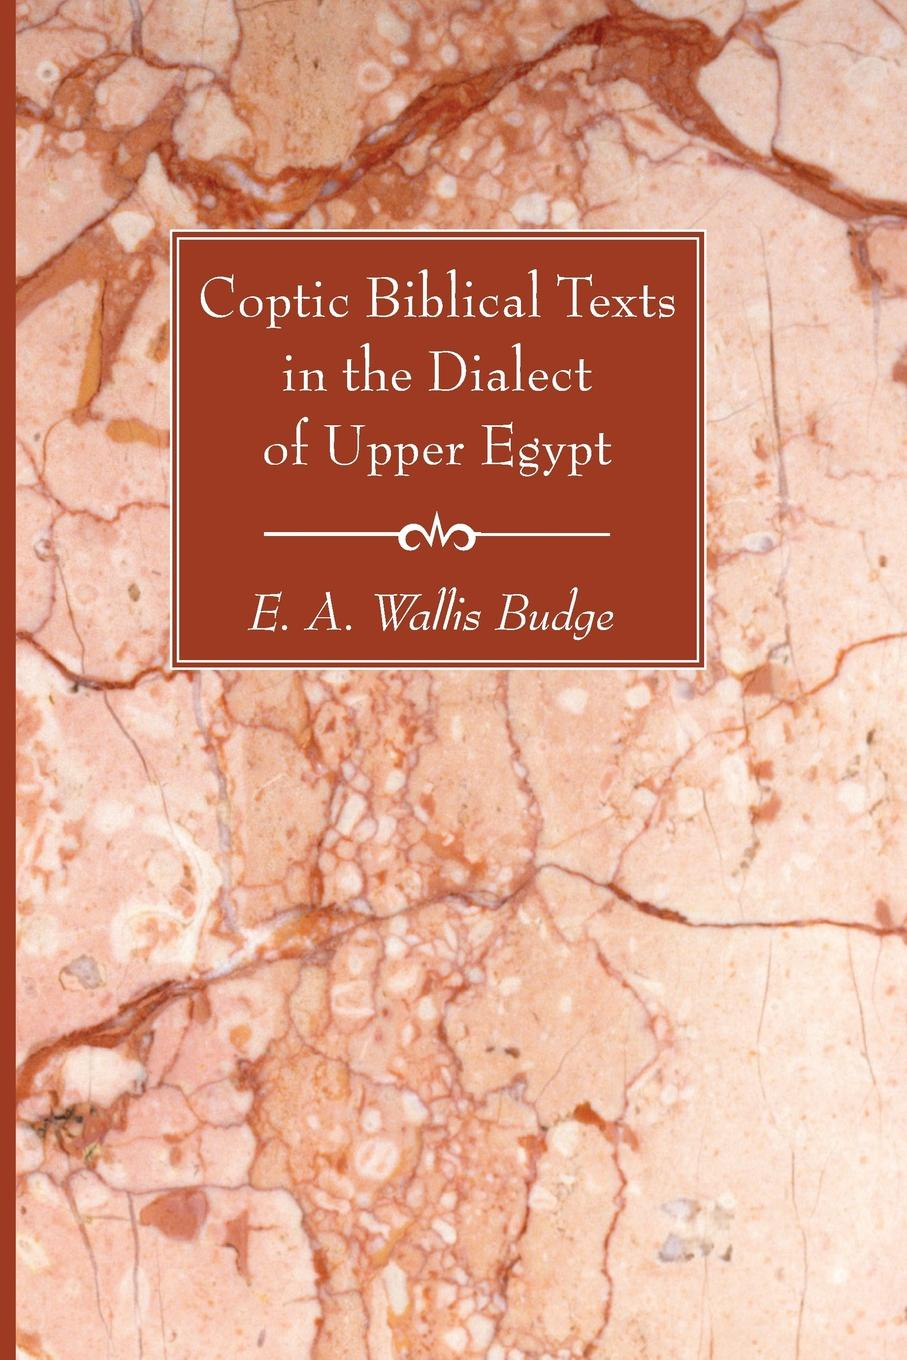 Coptic Biblical Texts in the Dialect of Upper Egypt